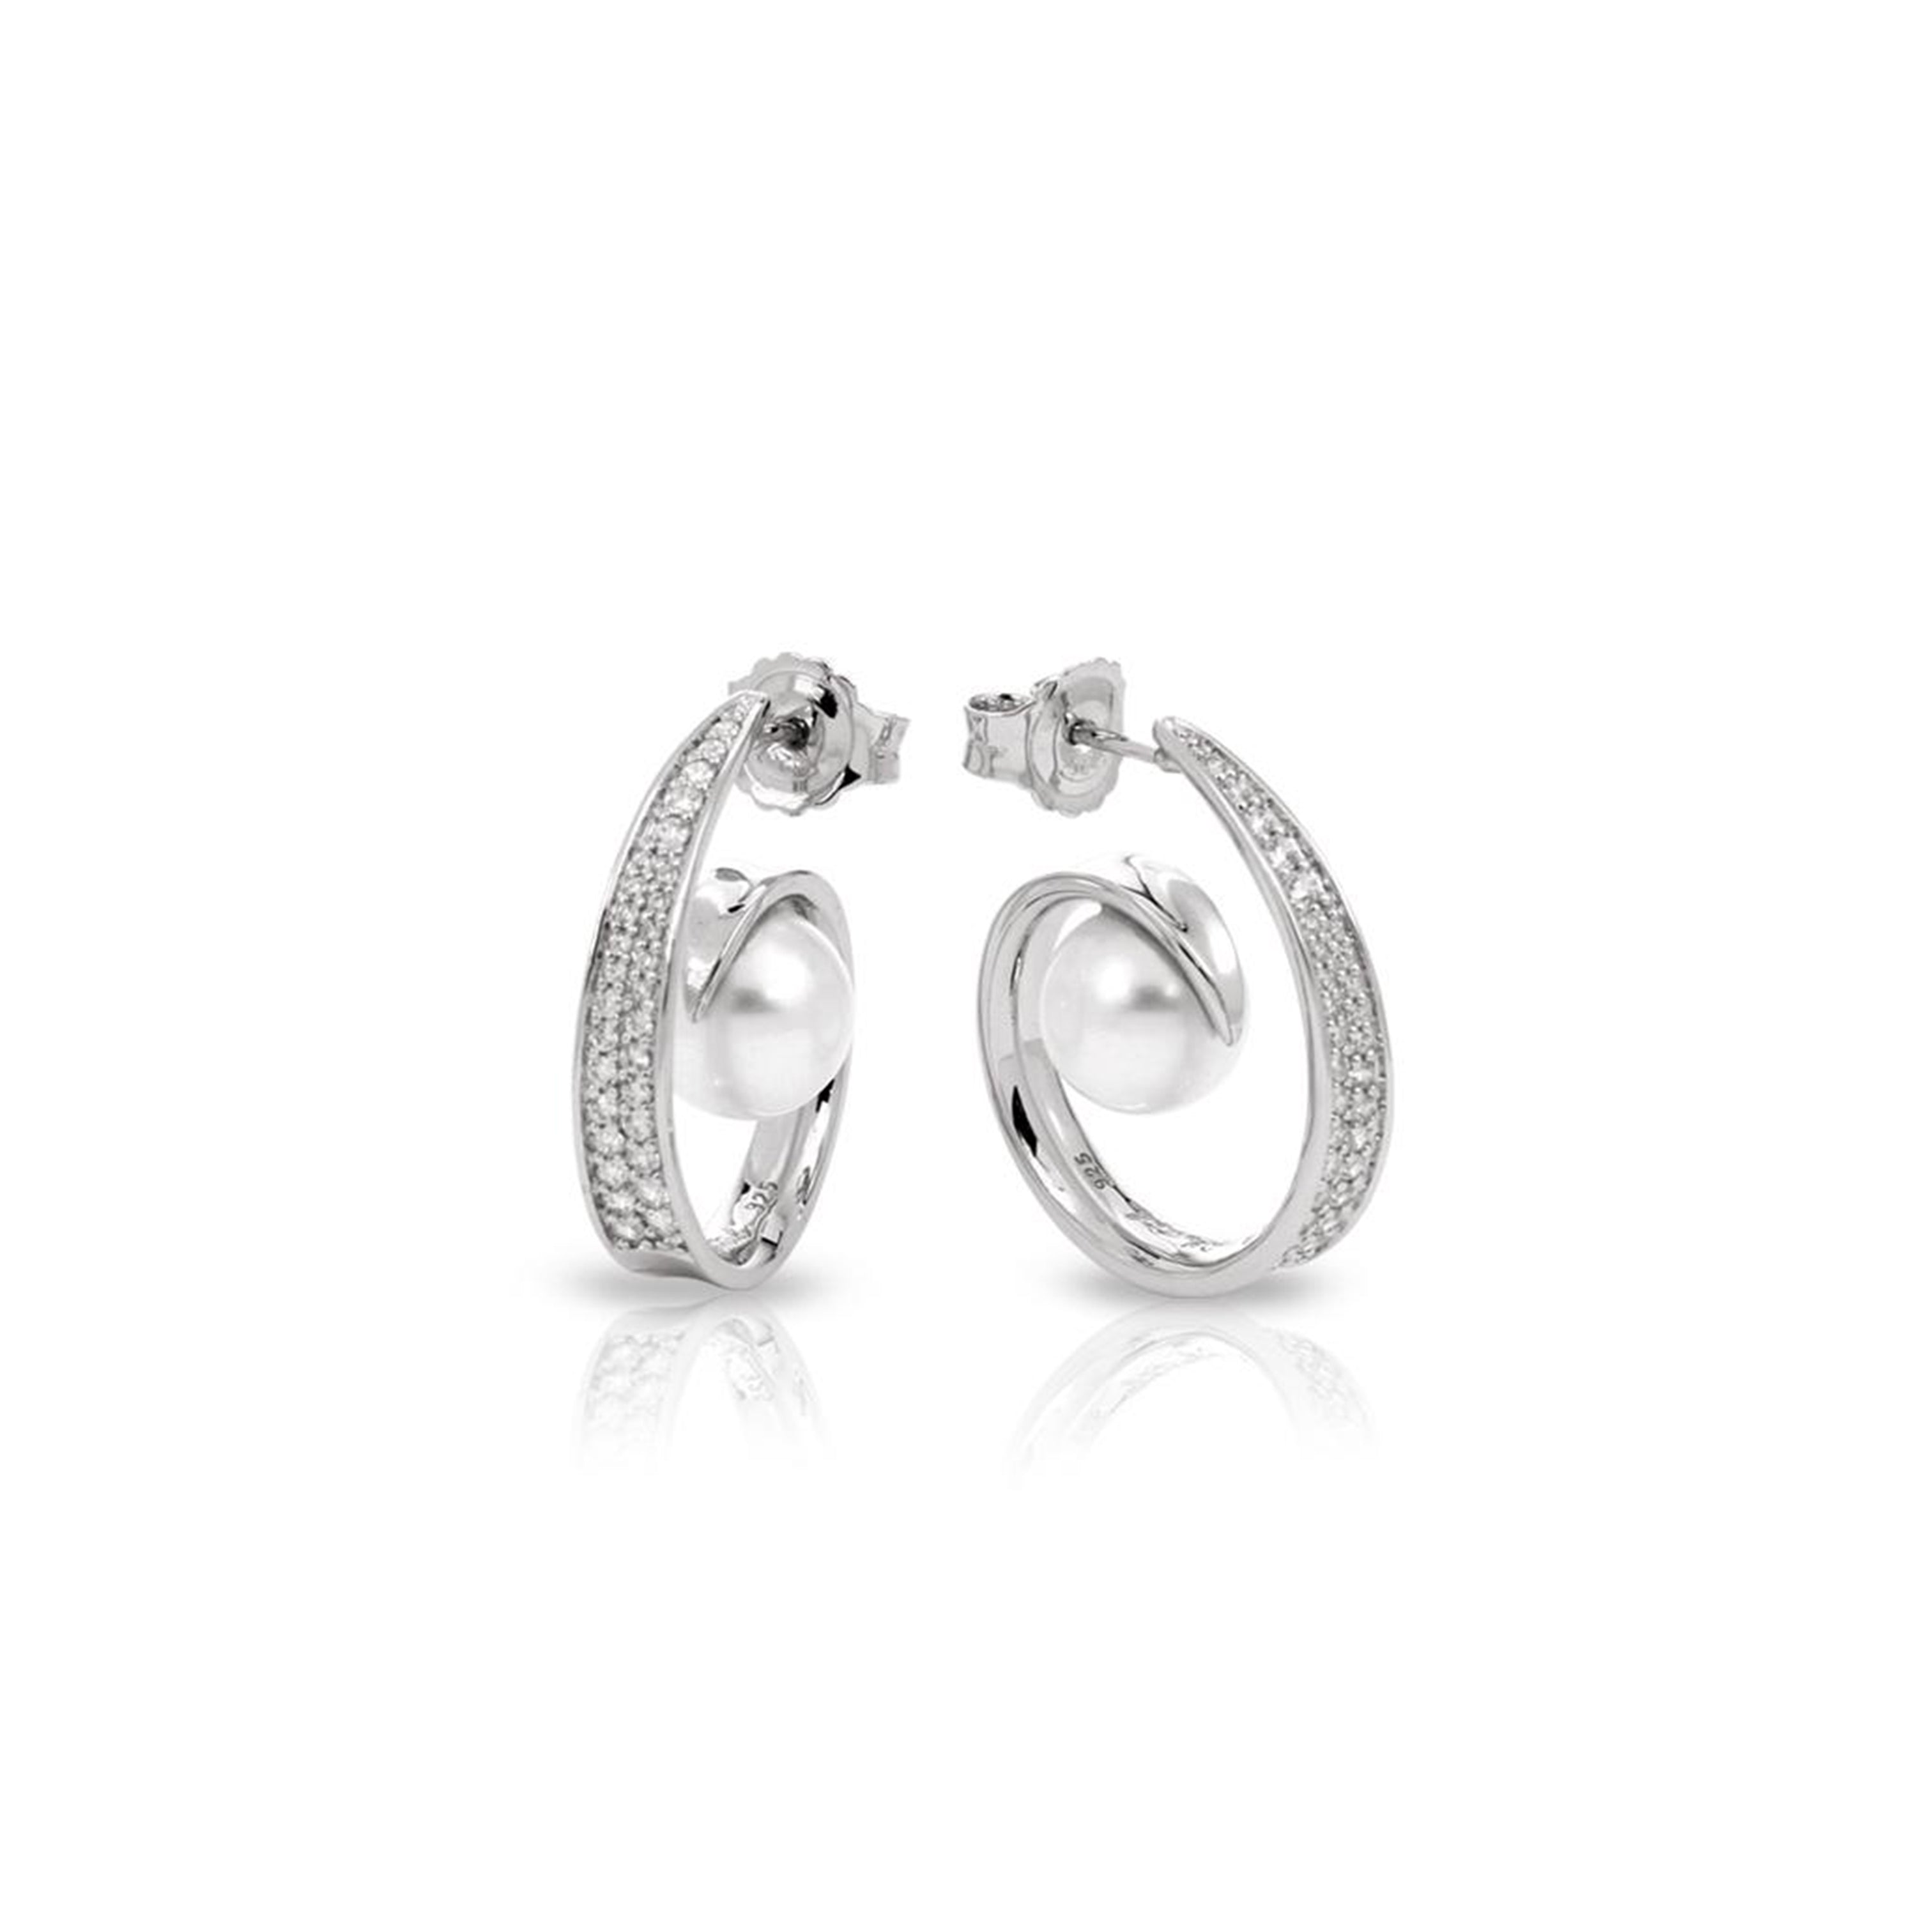 Sea shell pearl and white zirconia hoop earrings in sterling silver by Belle Etoile